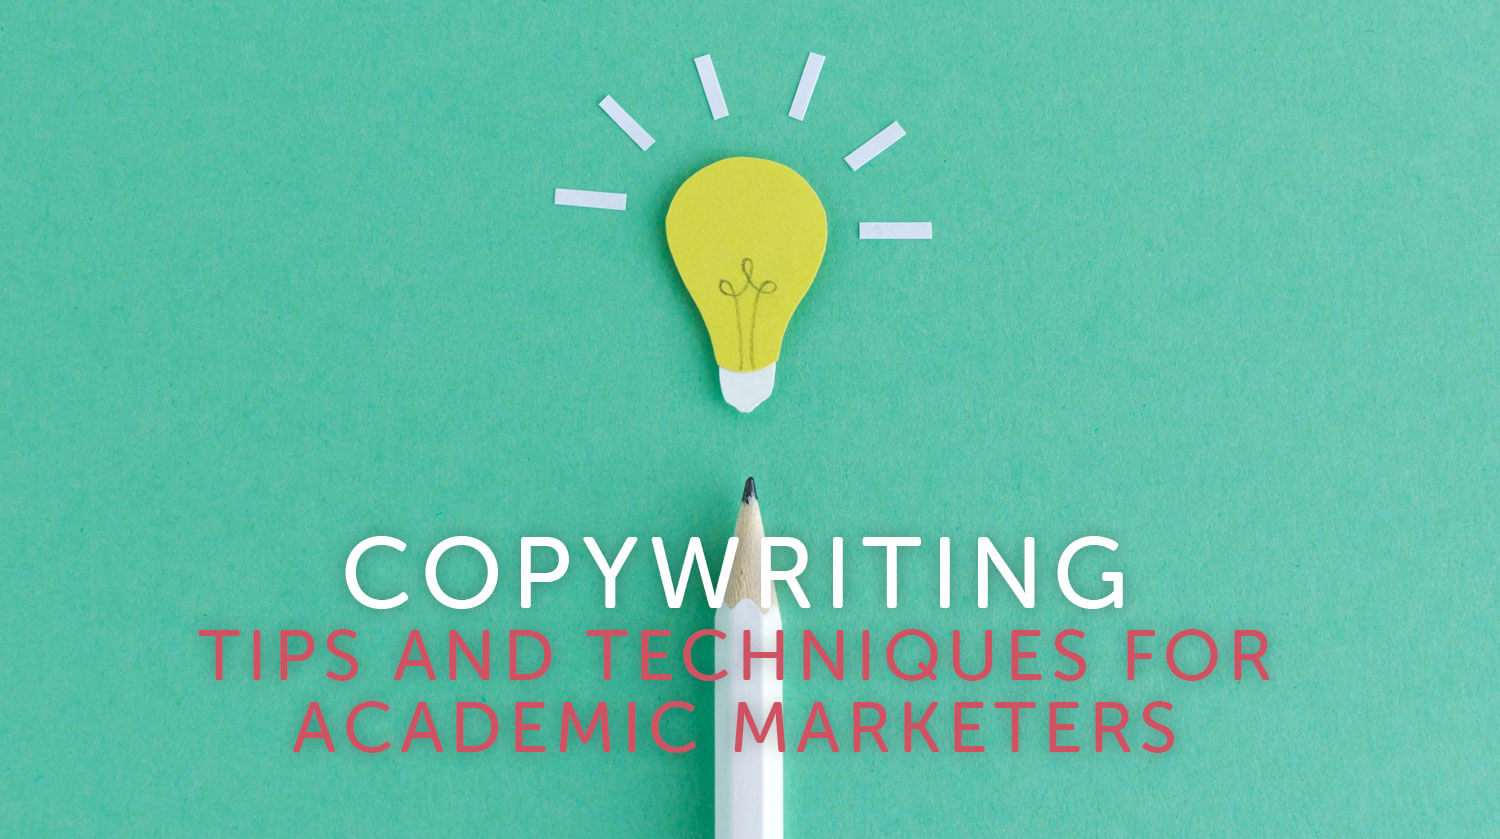 Copywriting Tips and Techniques for Academic Marketers